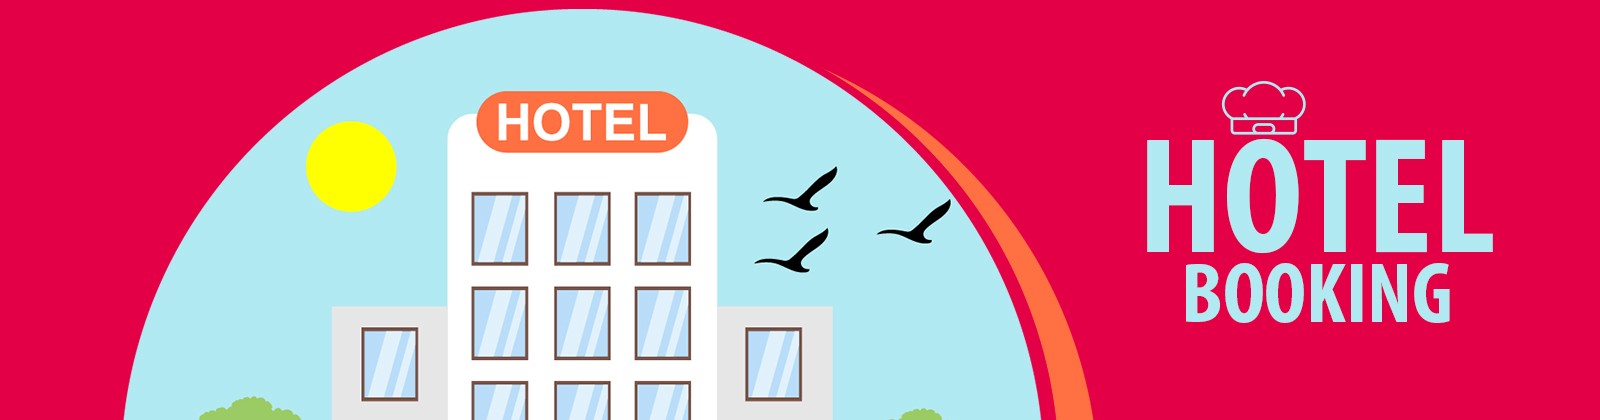 Domestic Hotel Booking With Sky Planners At Very Affordable Price We Are Online Travel Portal And Provide Services In Industry Like Air